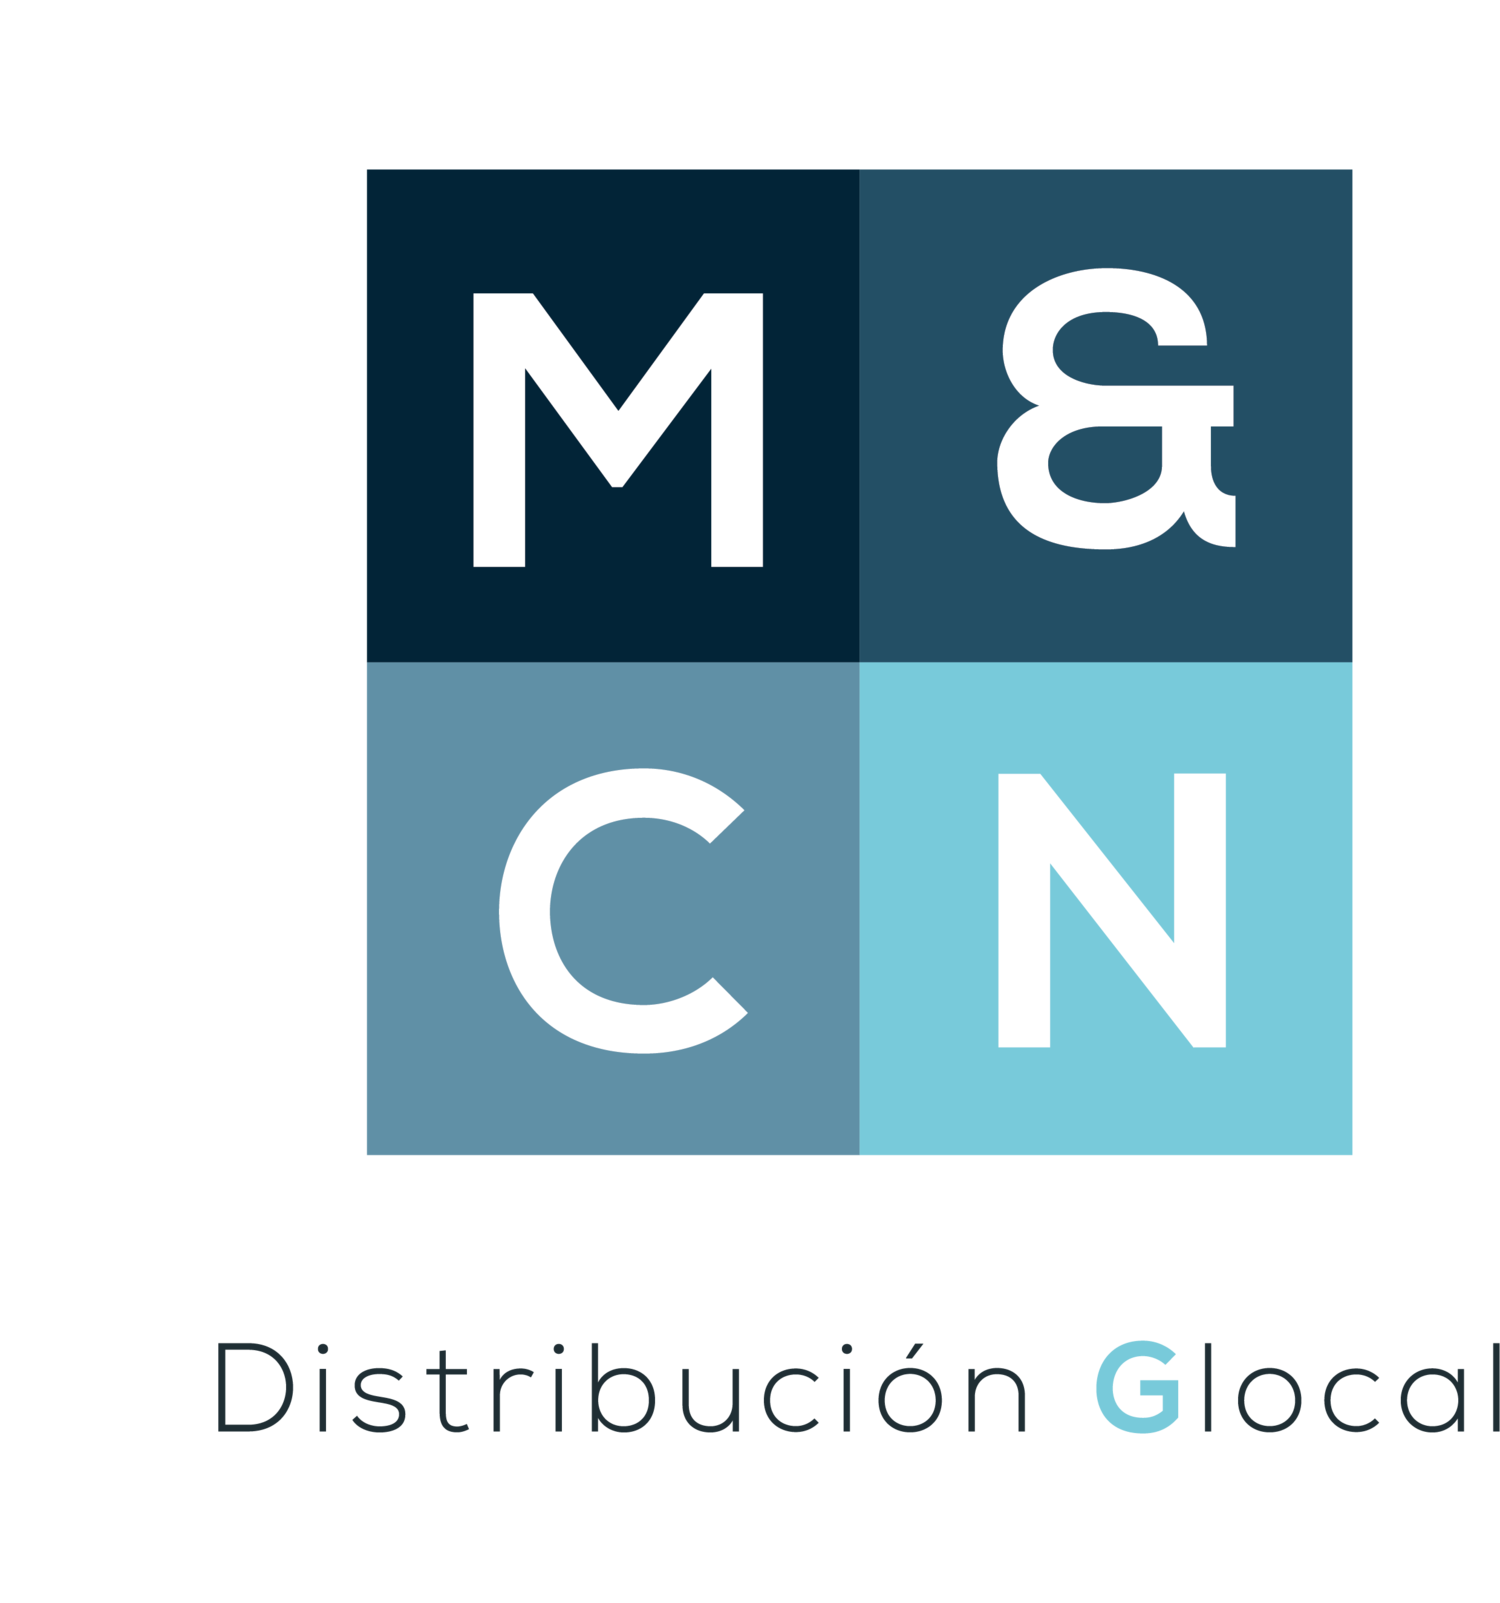 M&CN Distribution